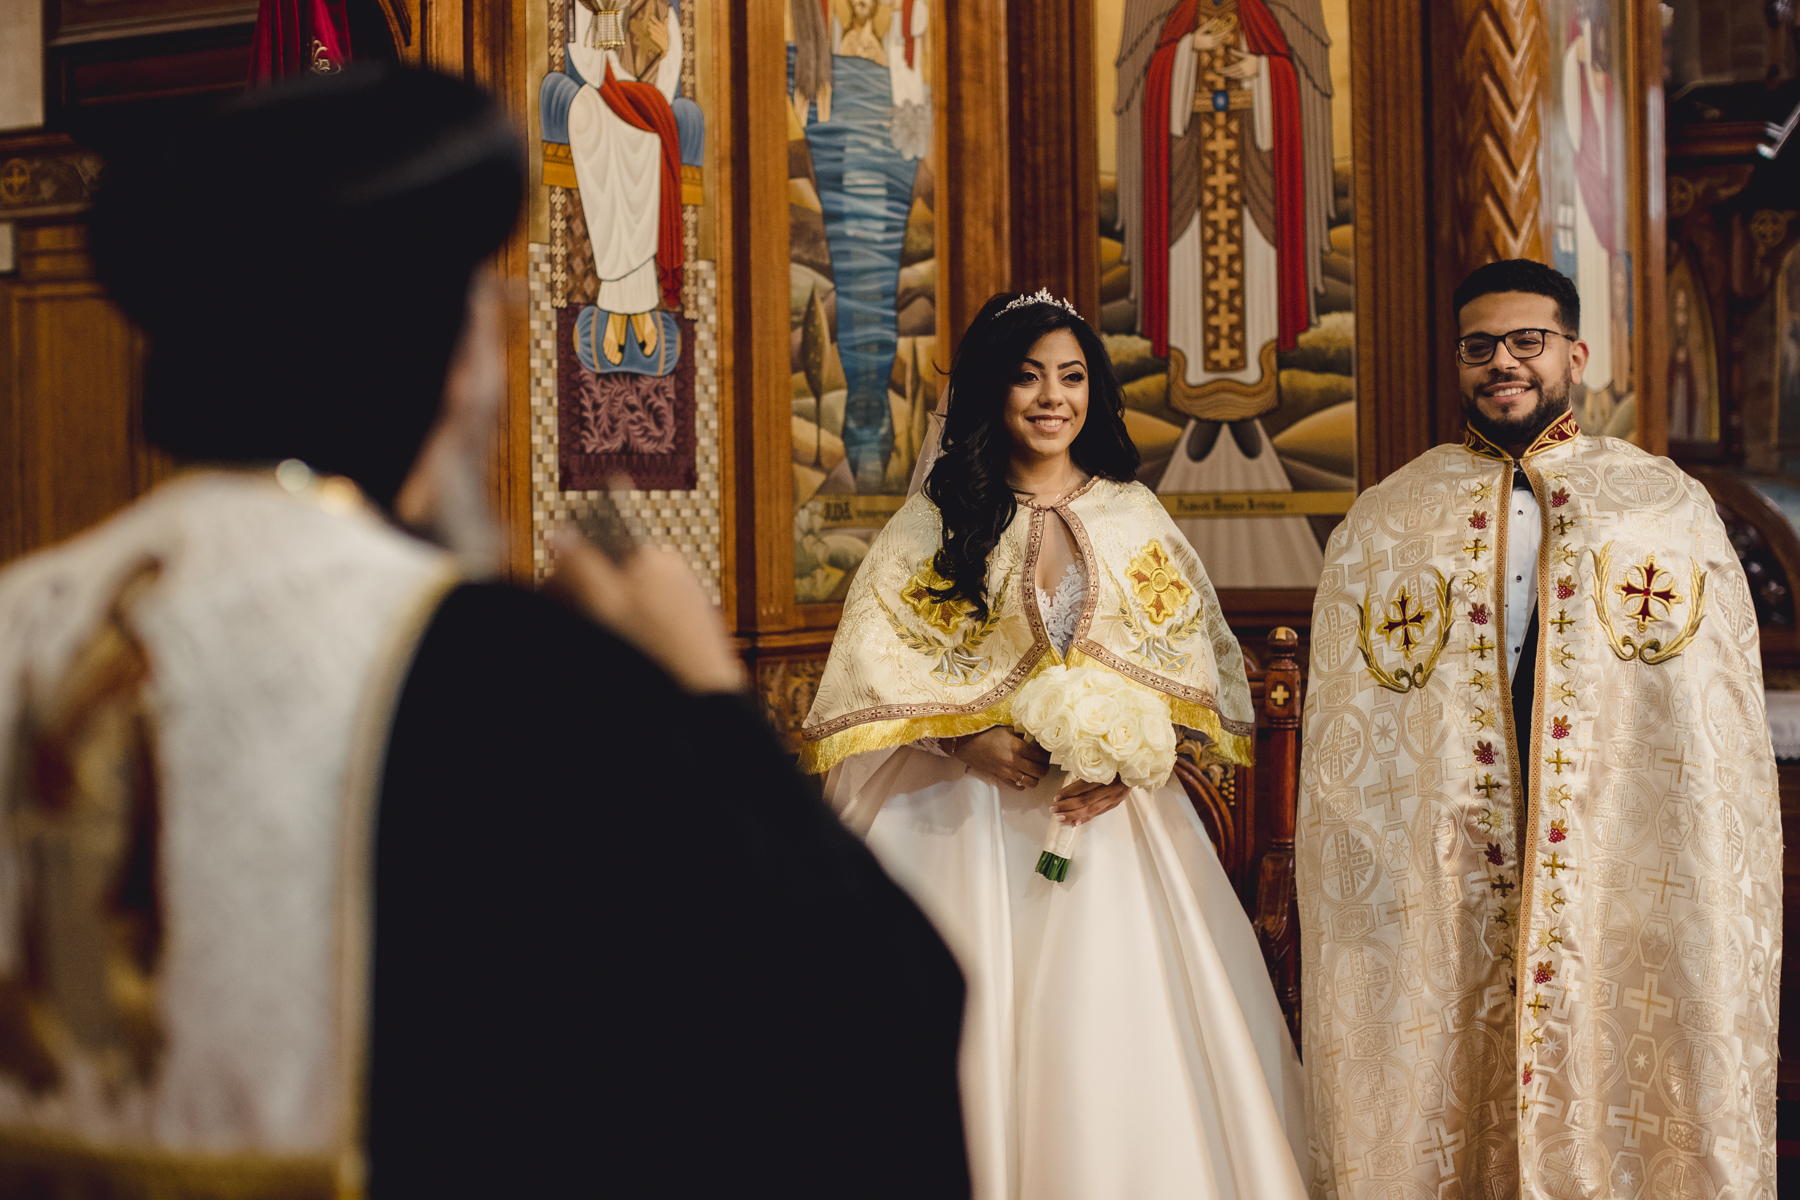 Church Priest Wedding Image from London | traditions are at the forefront of the service,